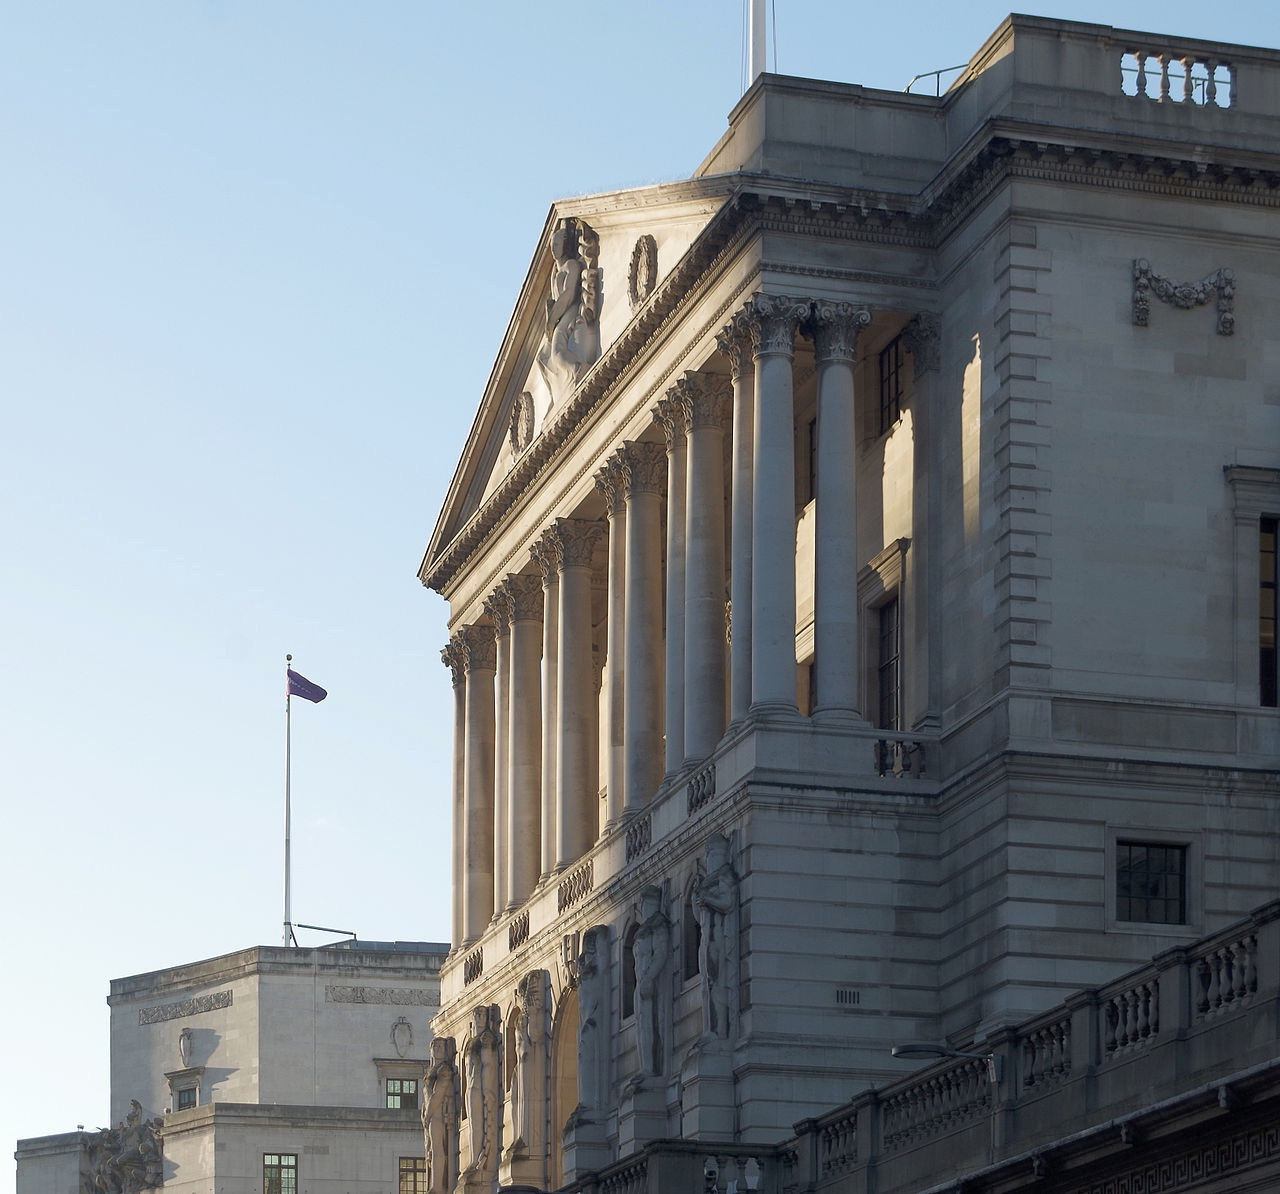 Bank of England by mattbuck (CC BY-SA 4.0)